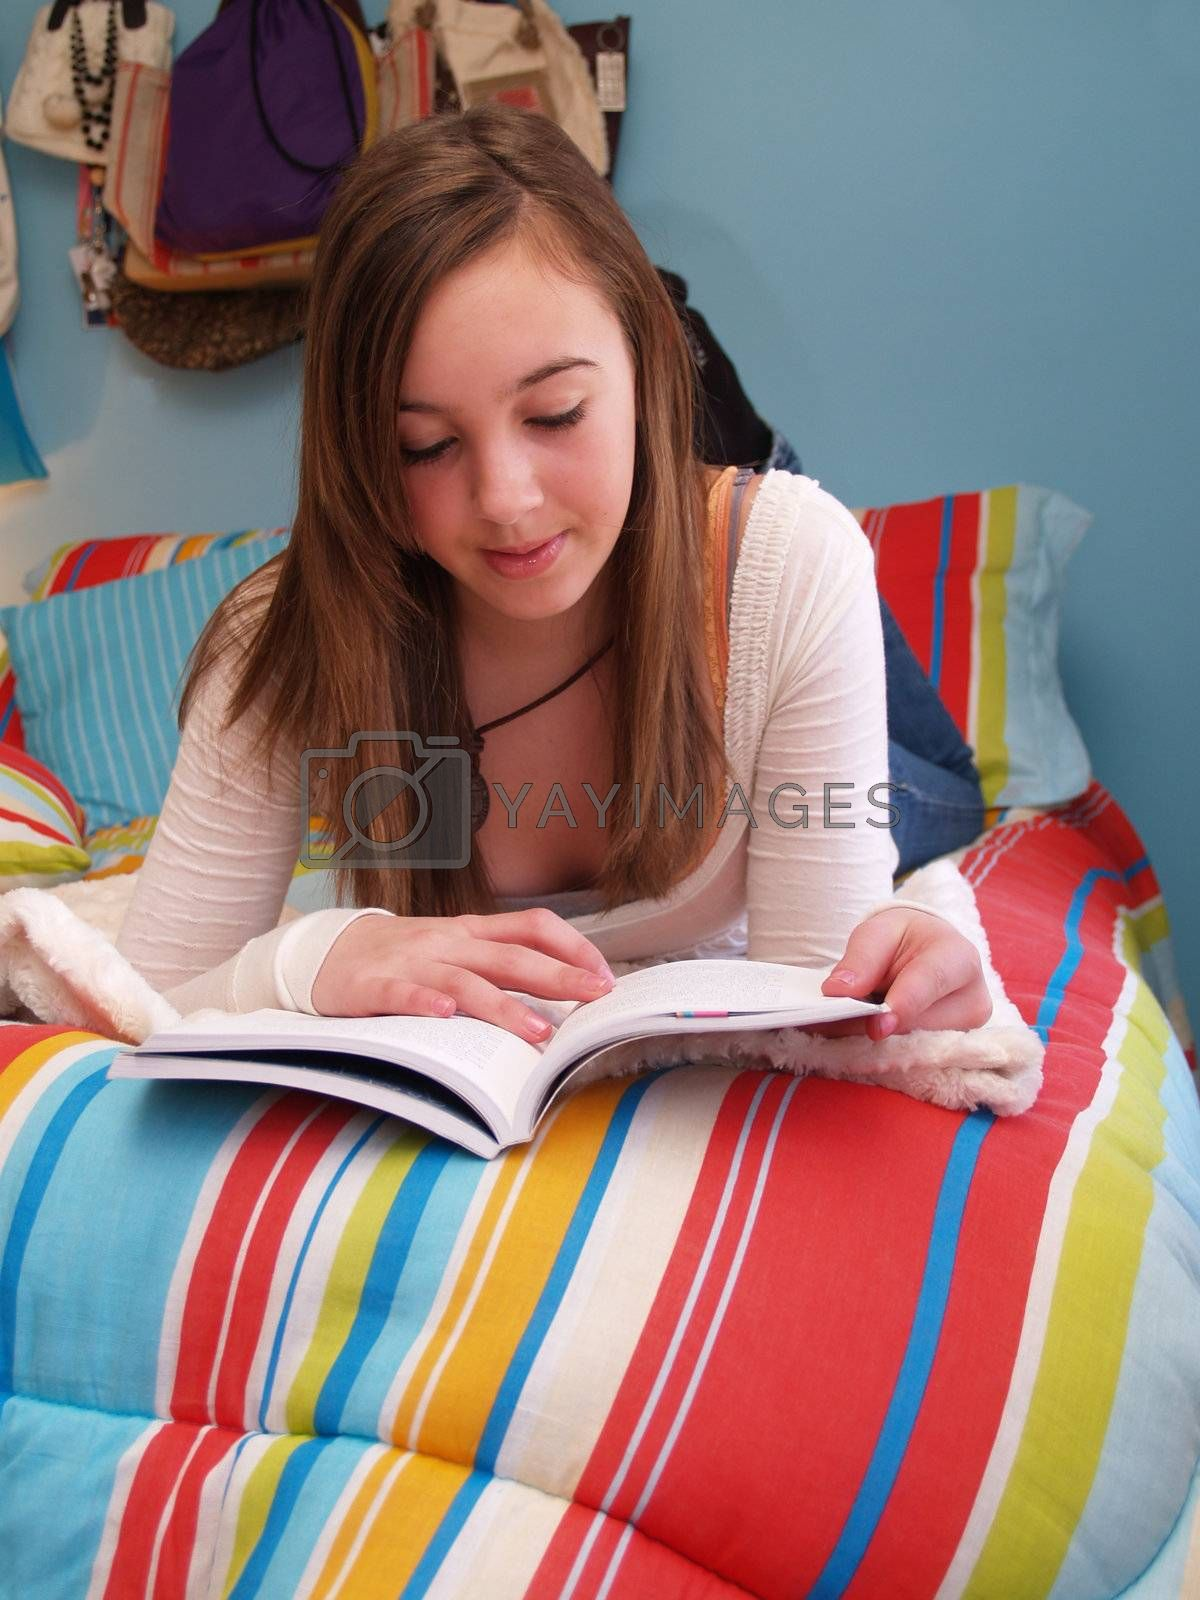 teenage girl sitting on a bed, reading a book